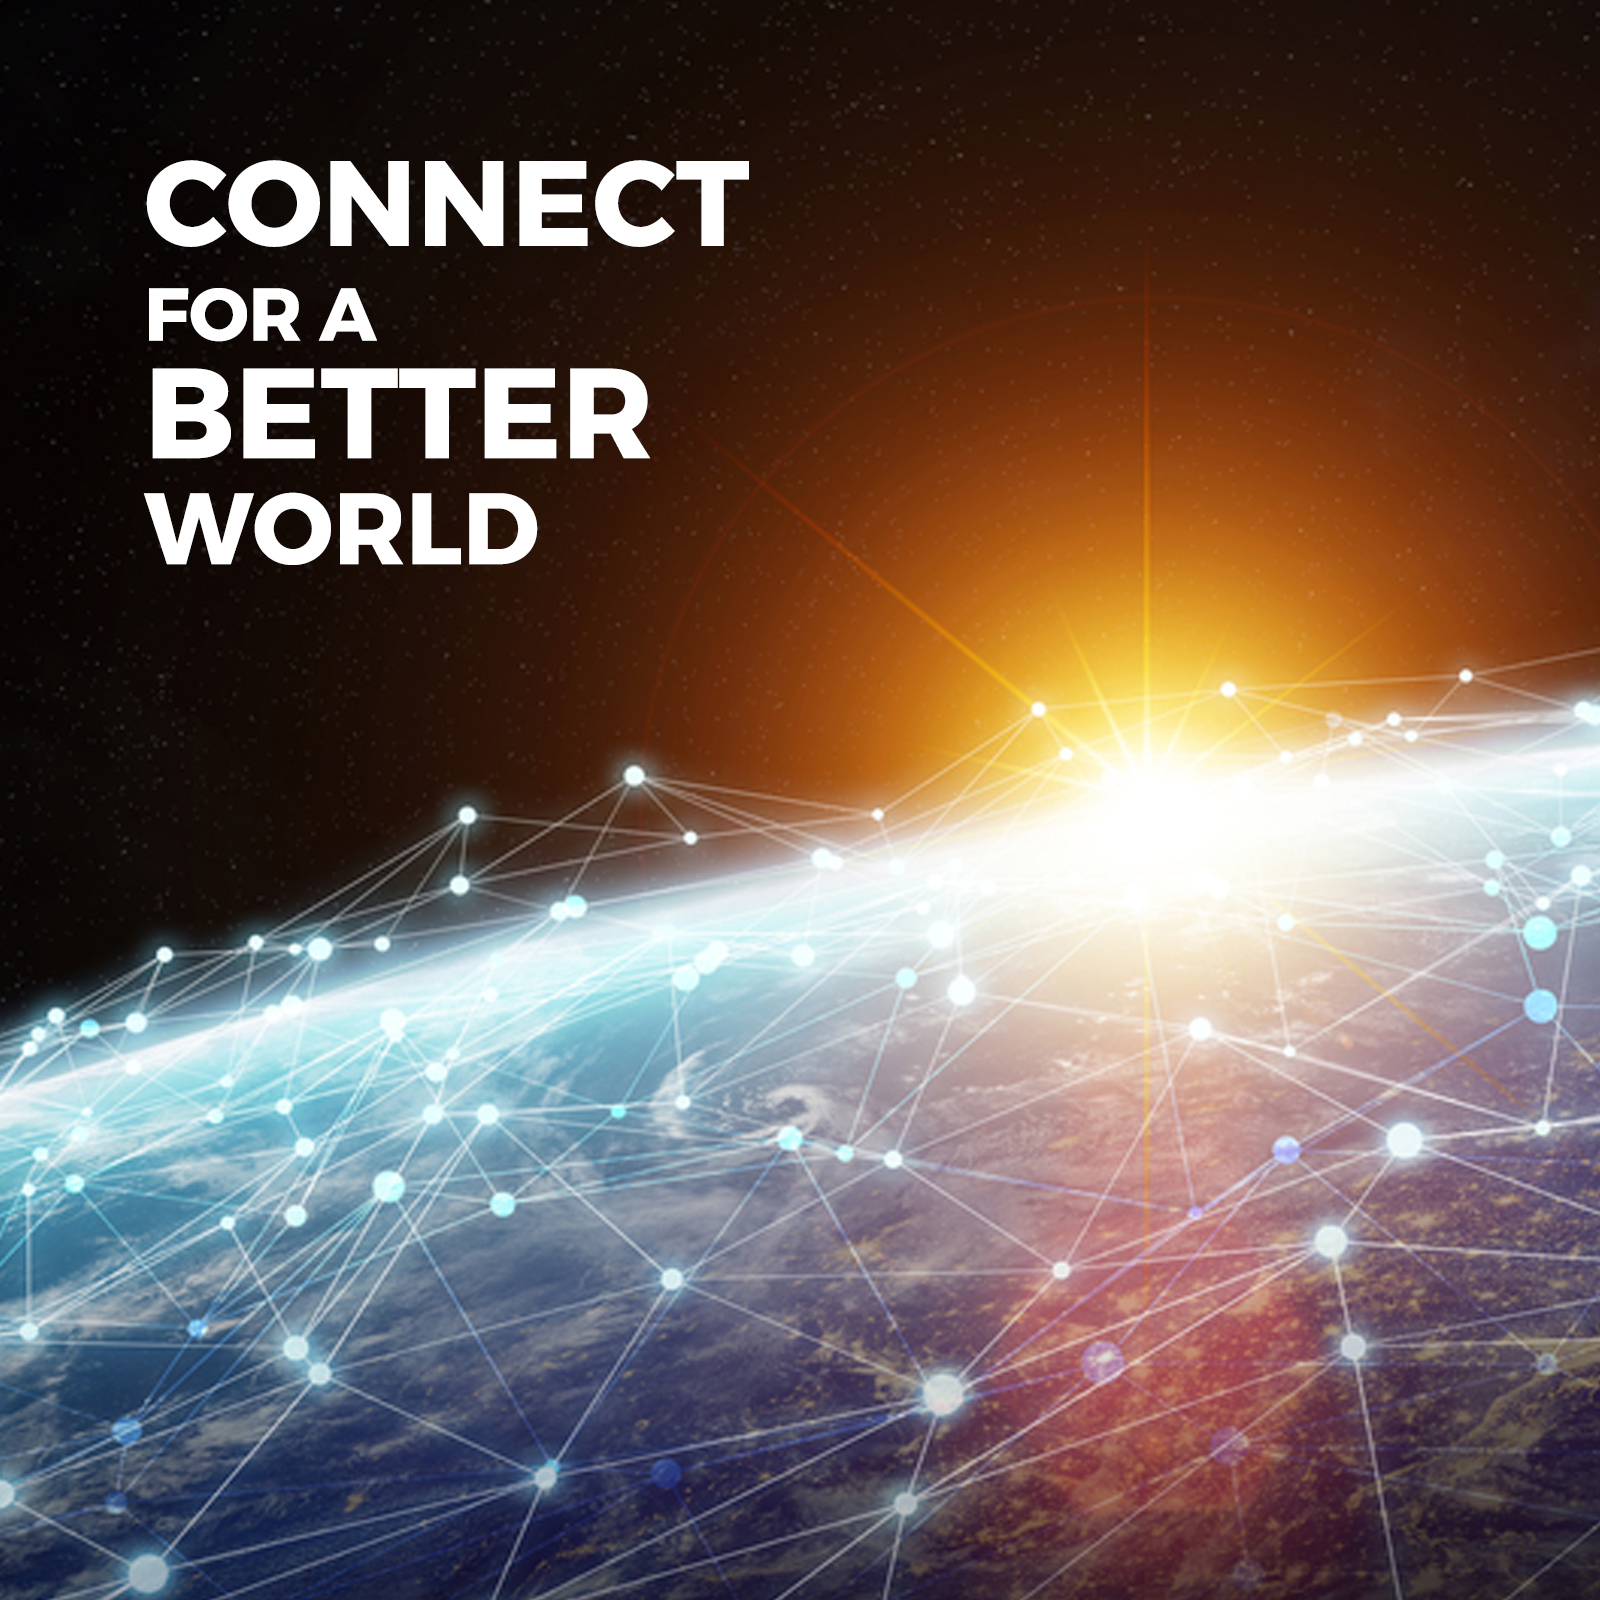 Enable Bedroom - Connect for a better world